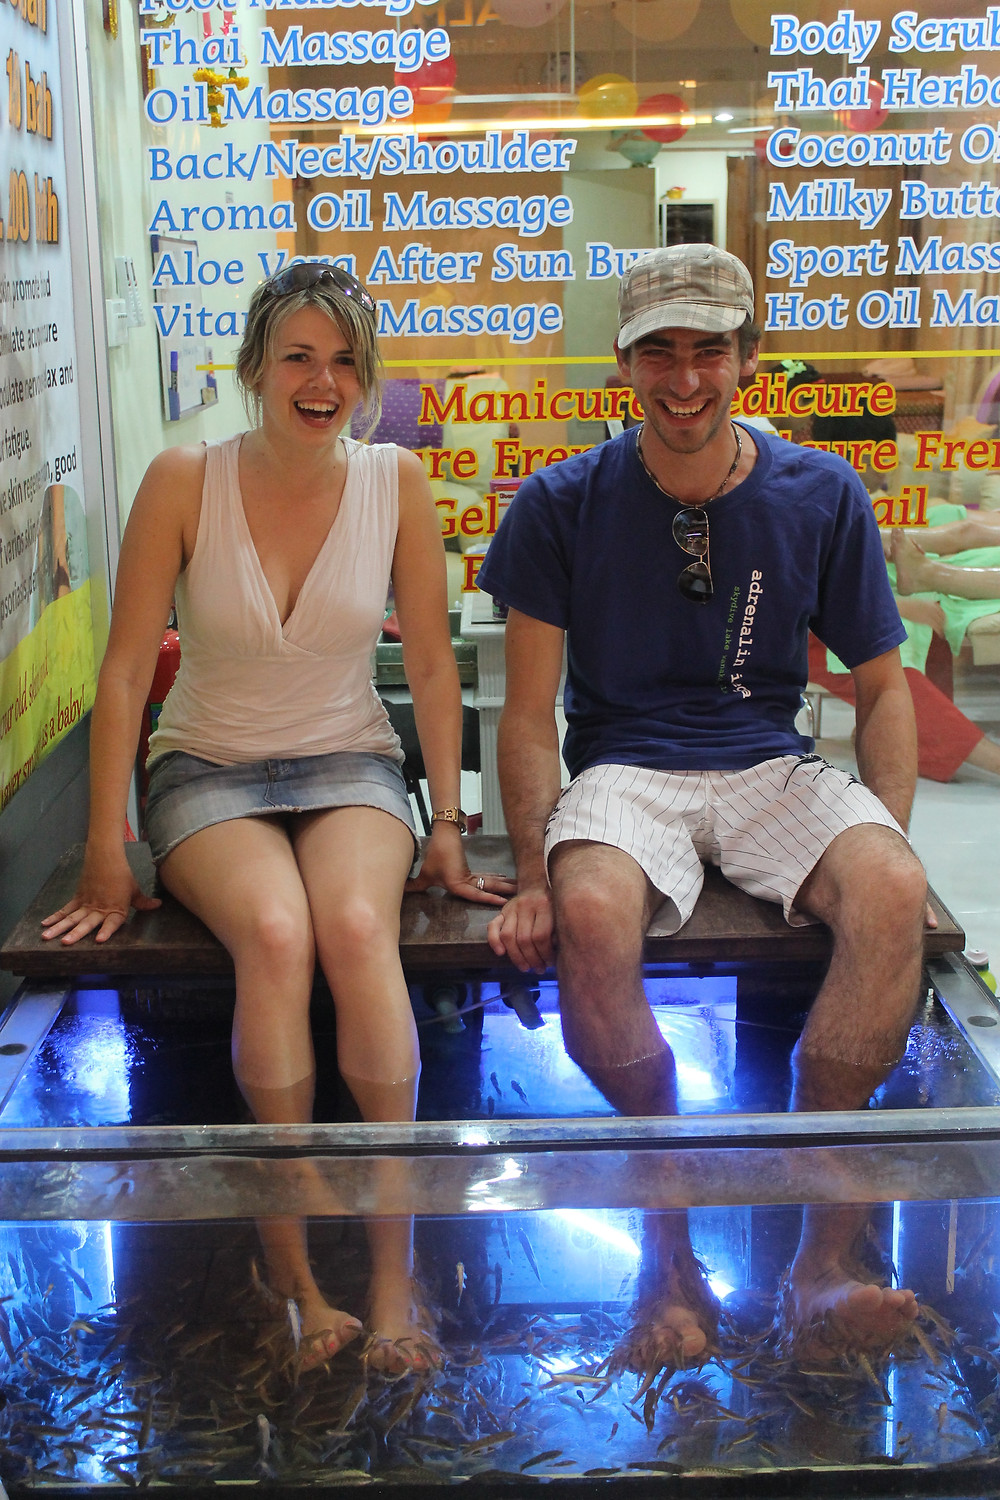 Fish pedicure in Phuket, Thailand